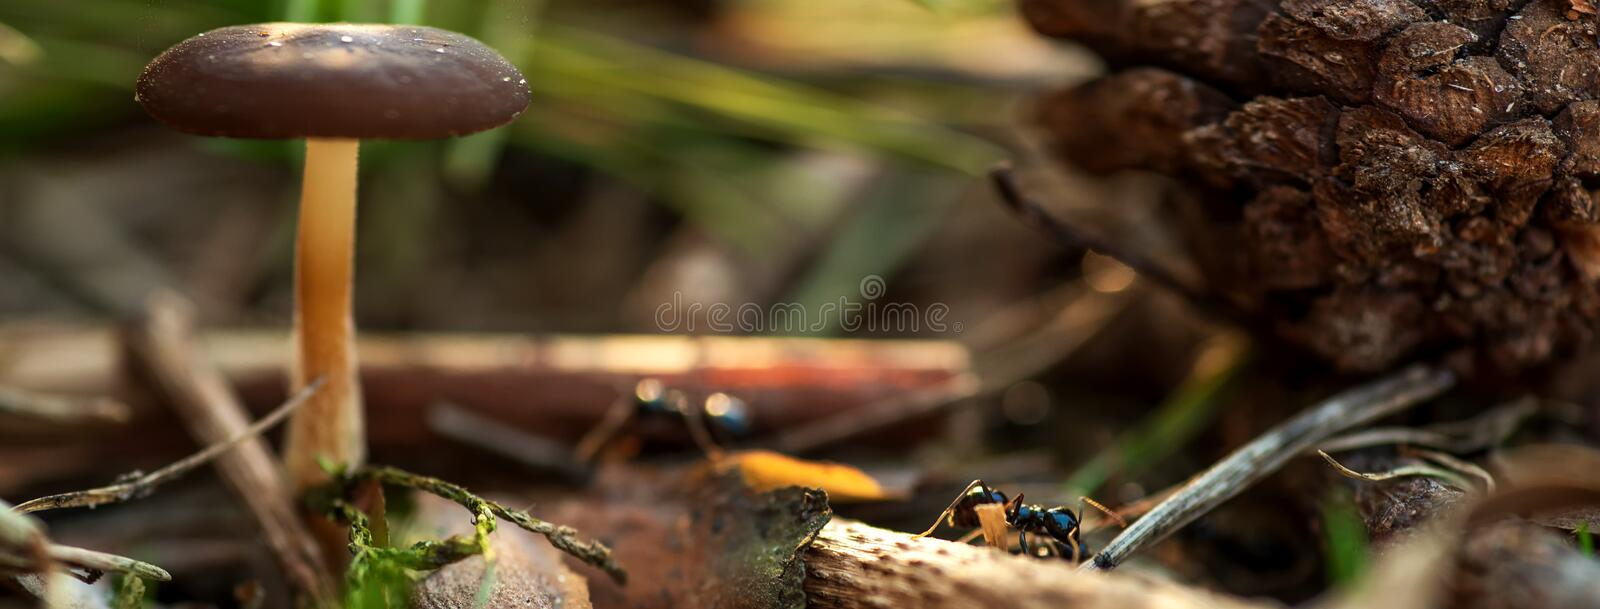 Mushroom, the pinecone and the ant on blurred green background royalty free stock image